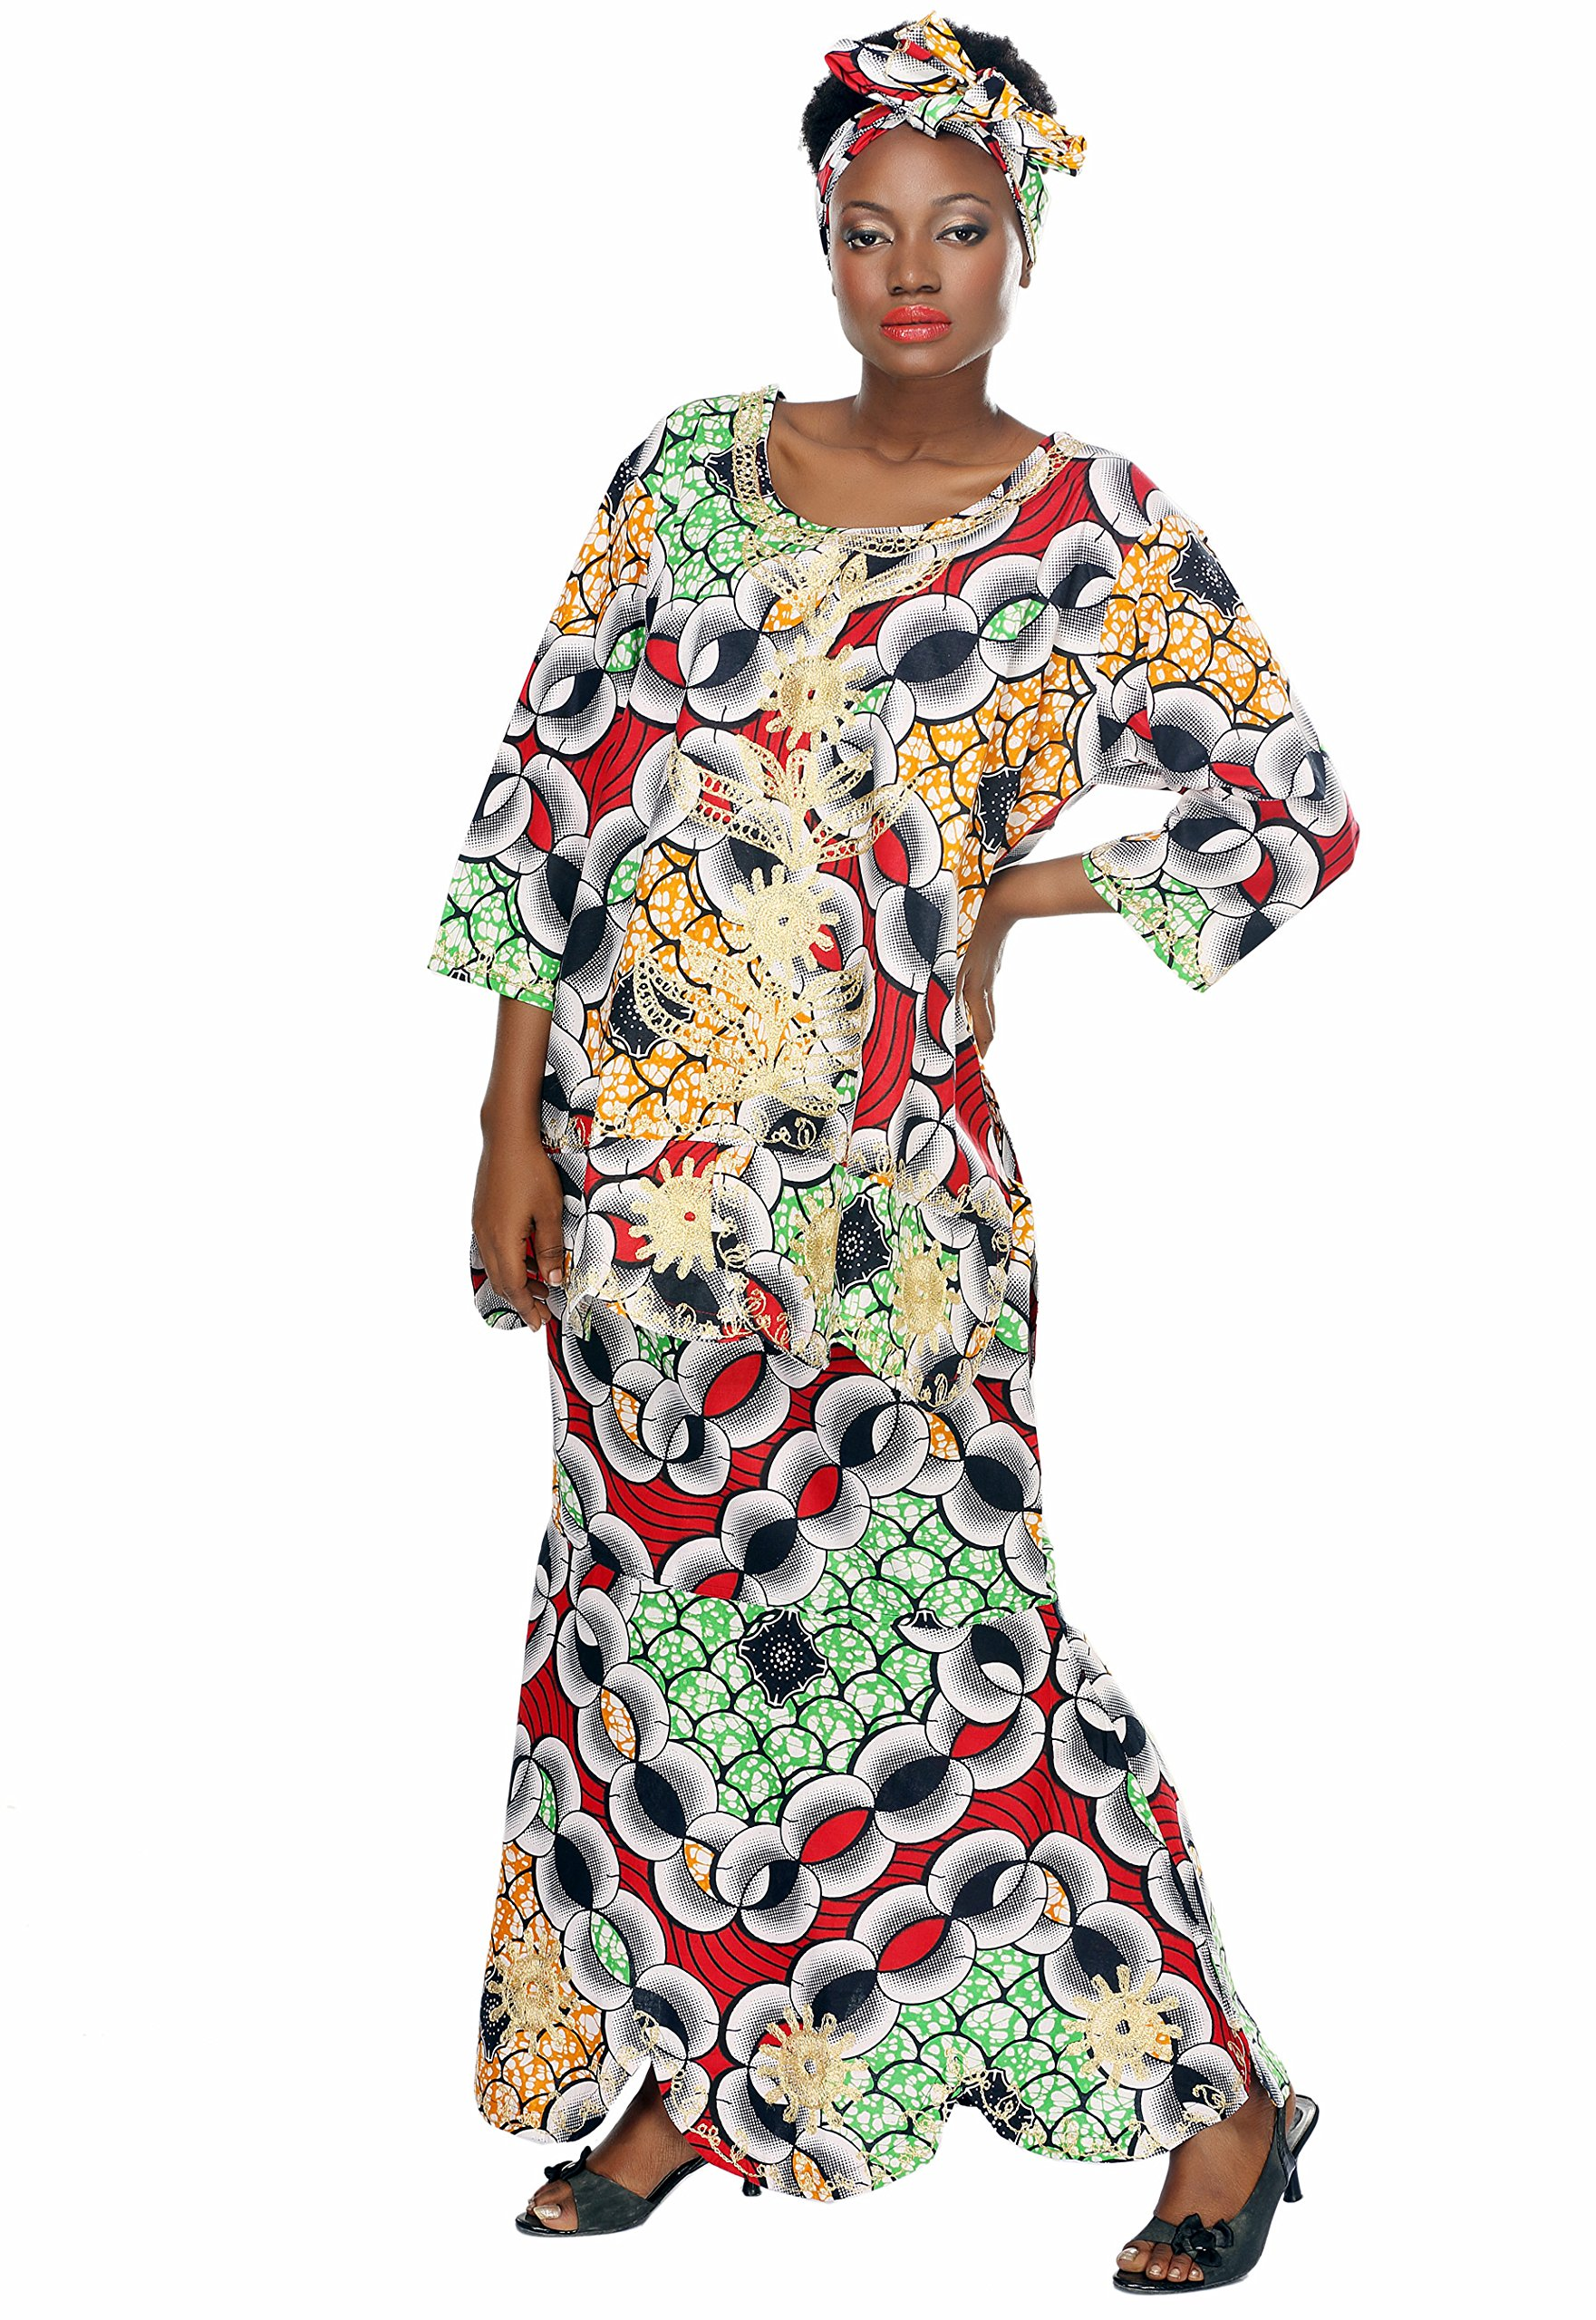 African Planet Women's Swahili Inspired Green Geometric Print A-Line Skirt Set